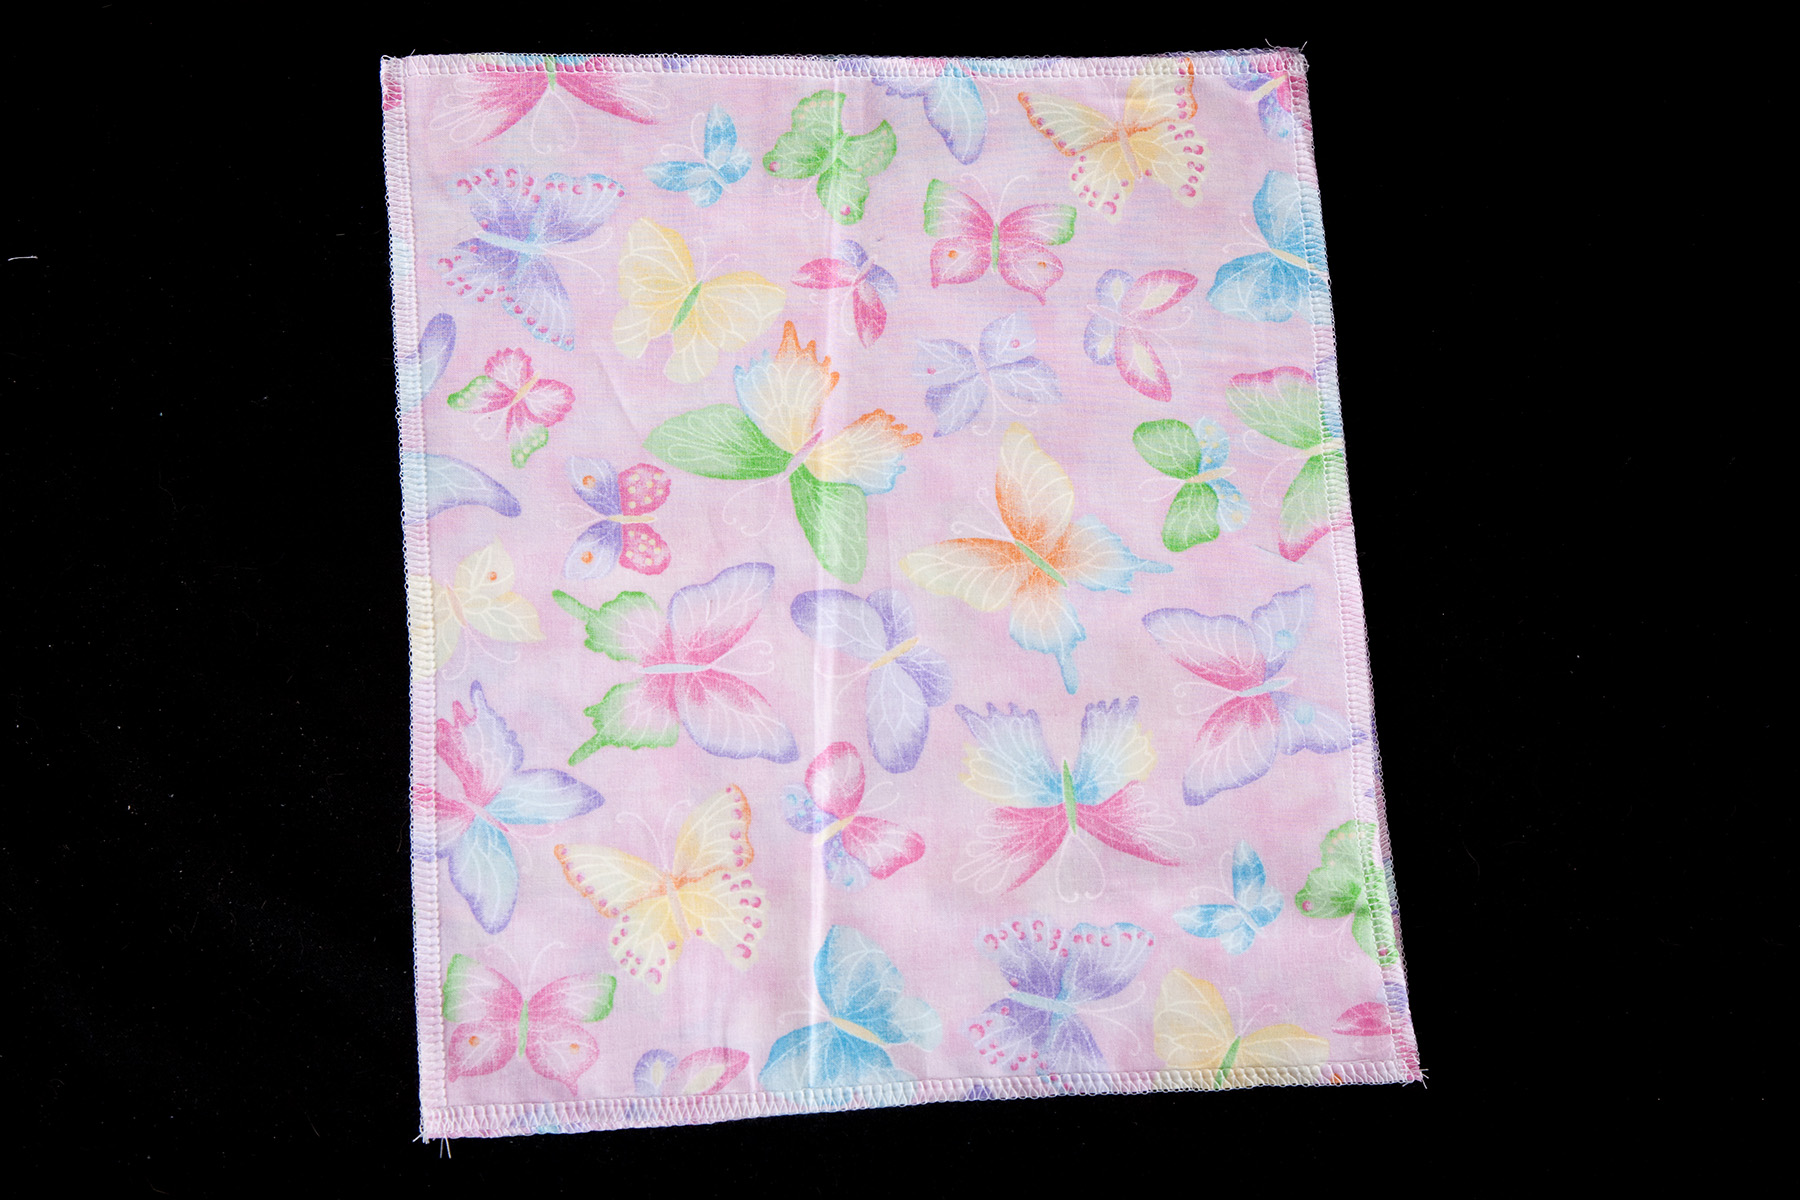 A rectangle of light purple butterfly print fabric against a black background.